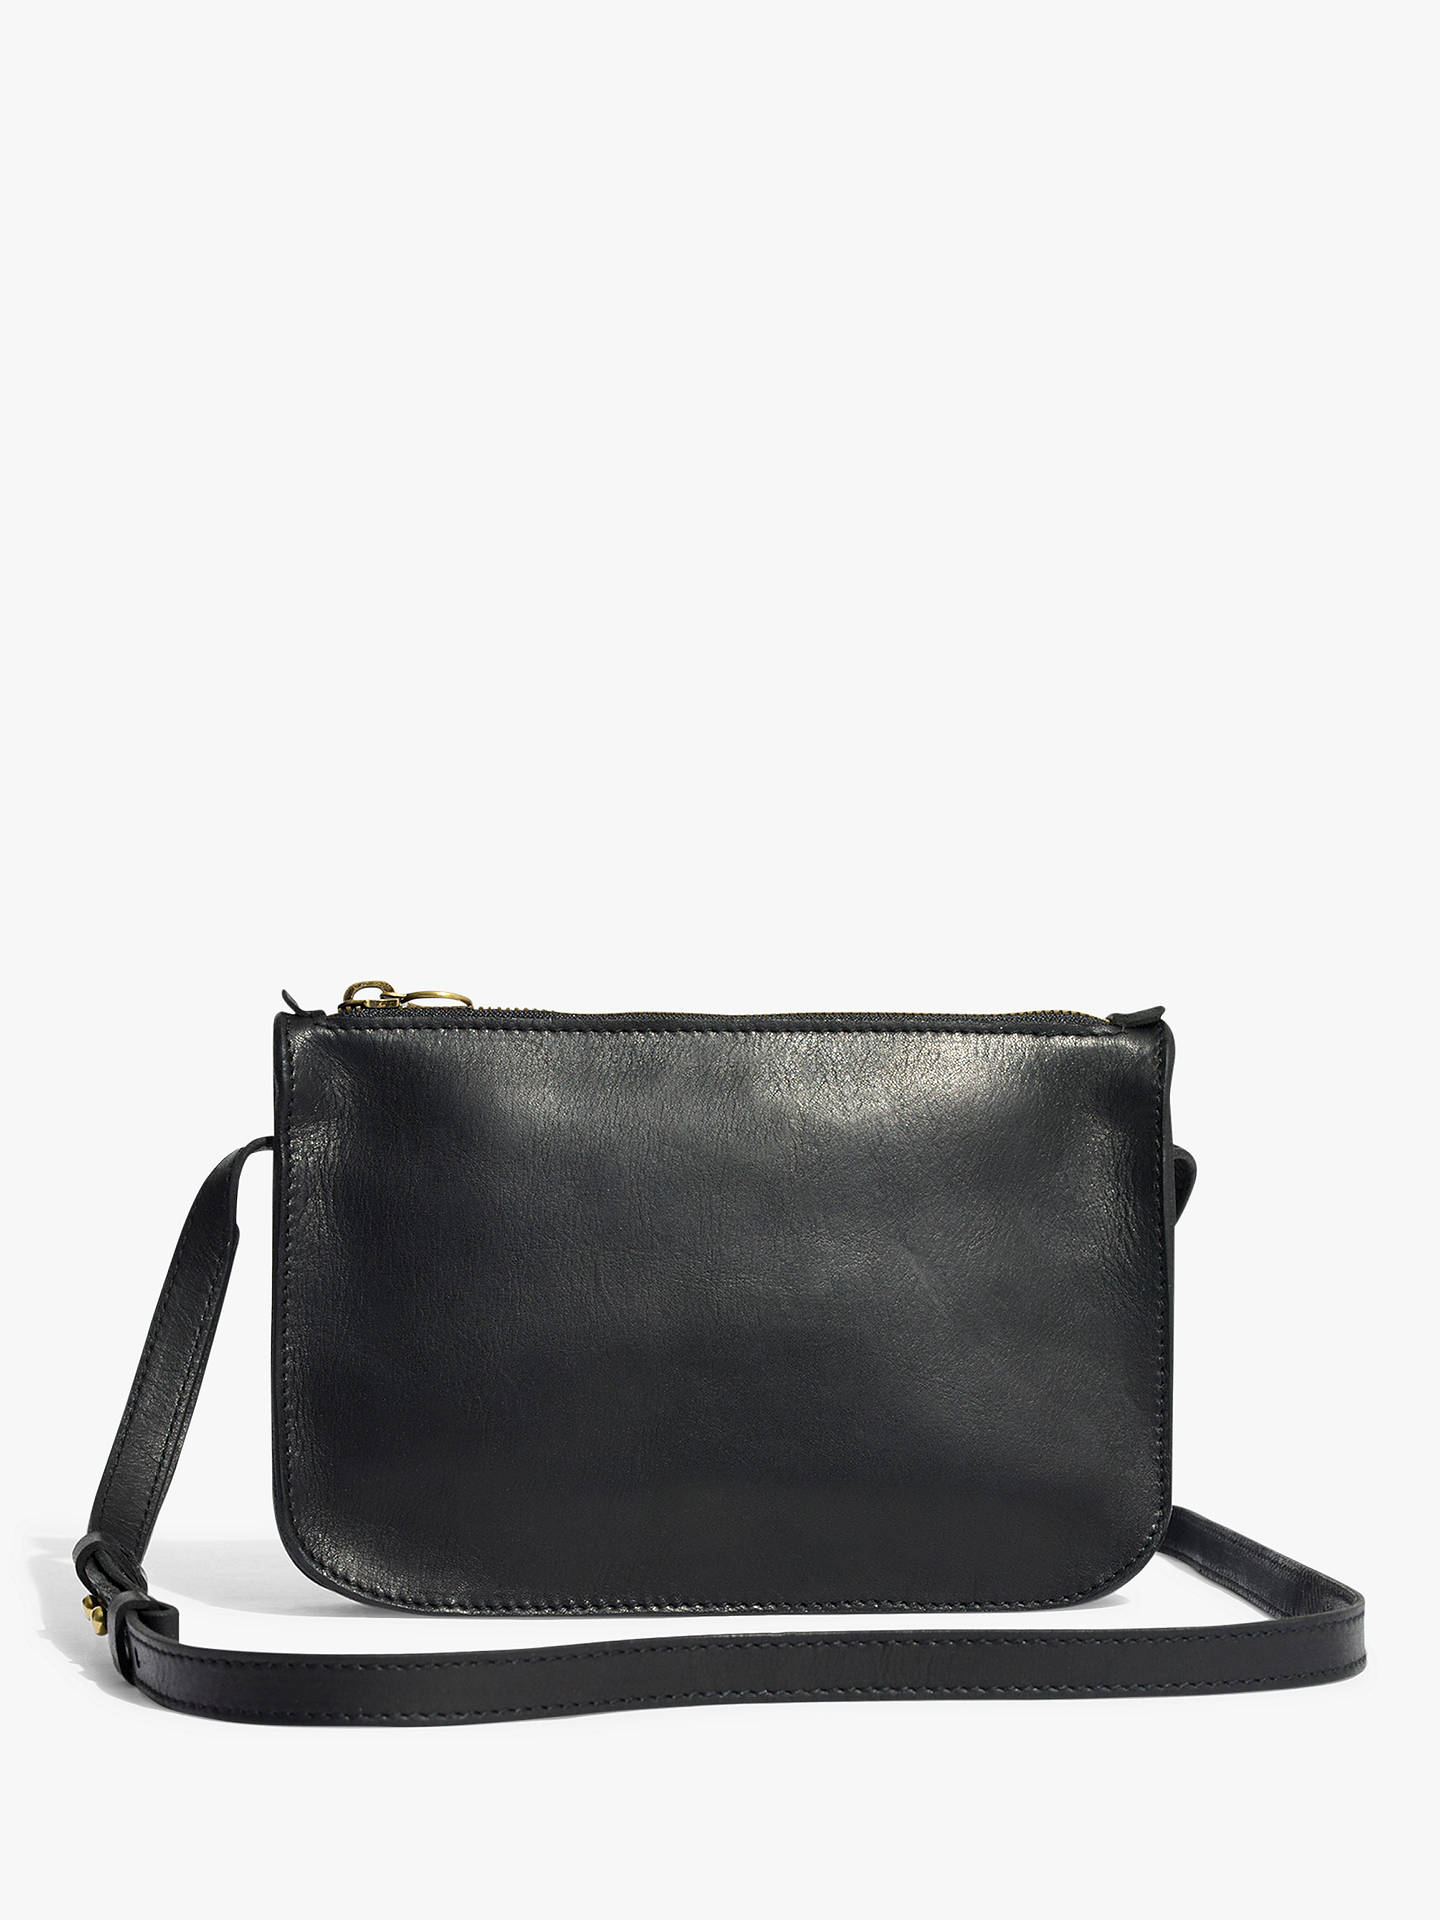 BuyMadewell Leather Simple Cross Body Bag aea220b8e64a